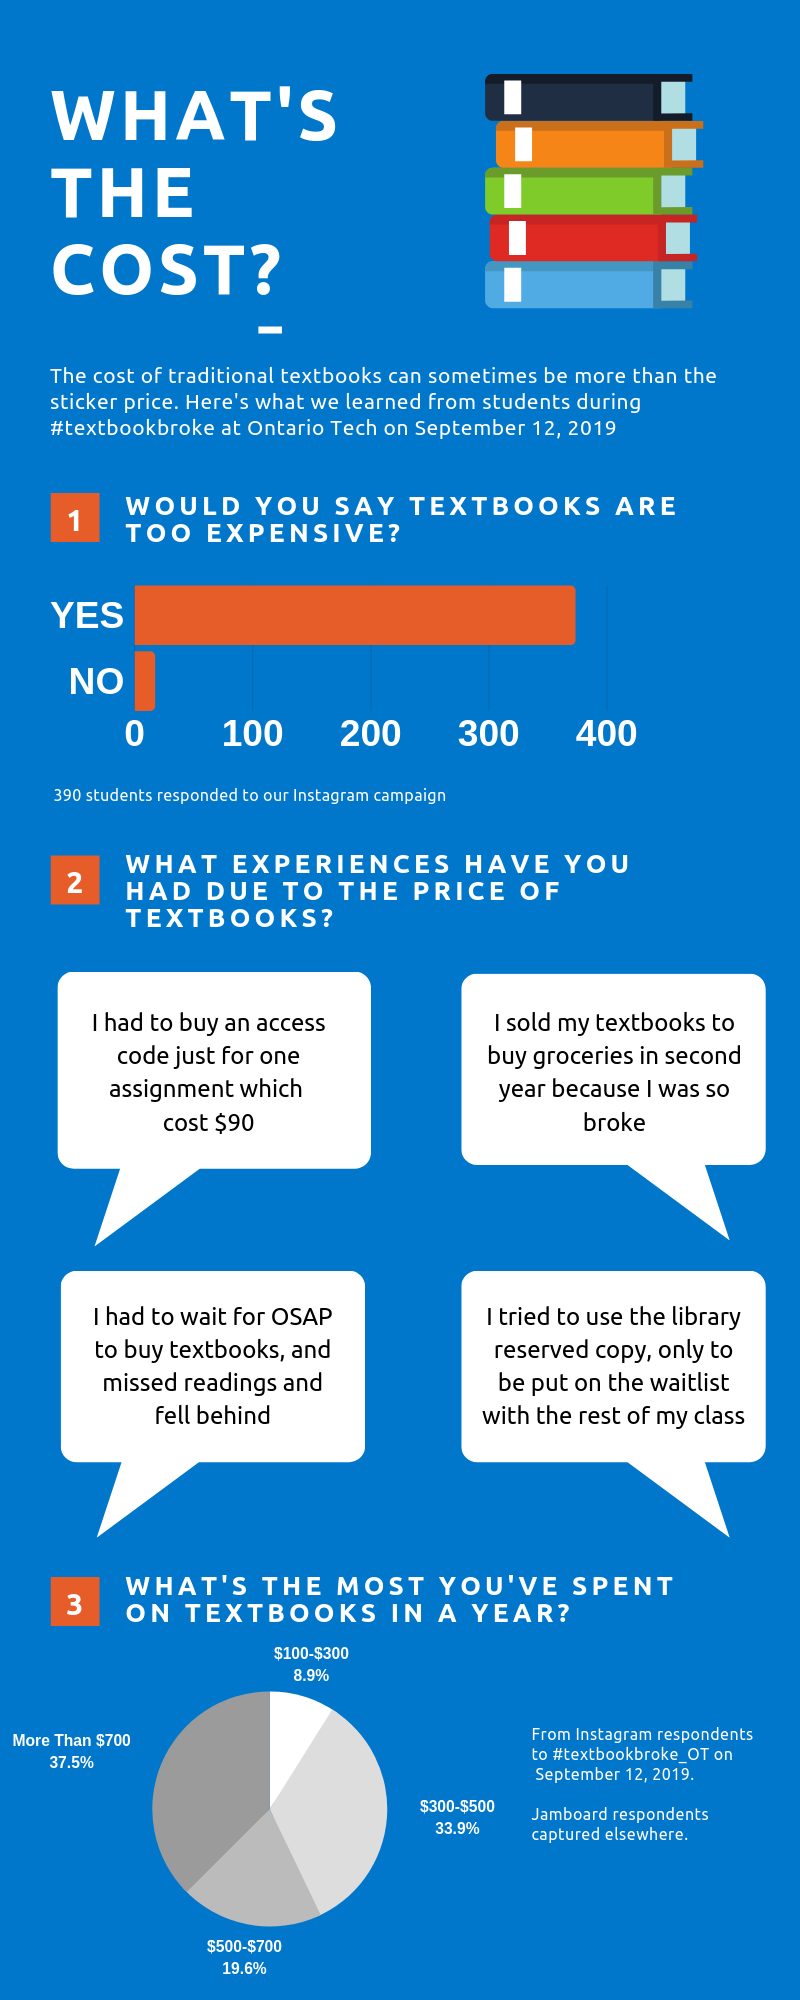 What's the Cost Infographic. For an accessible version, email oer@ontariotechu.ca